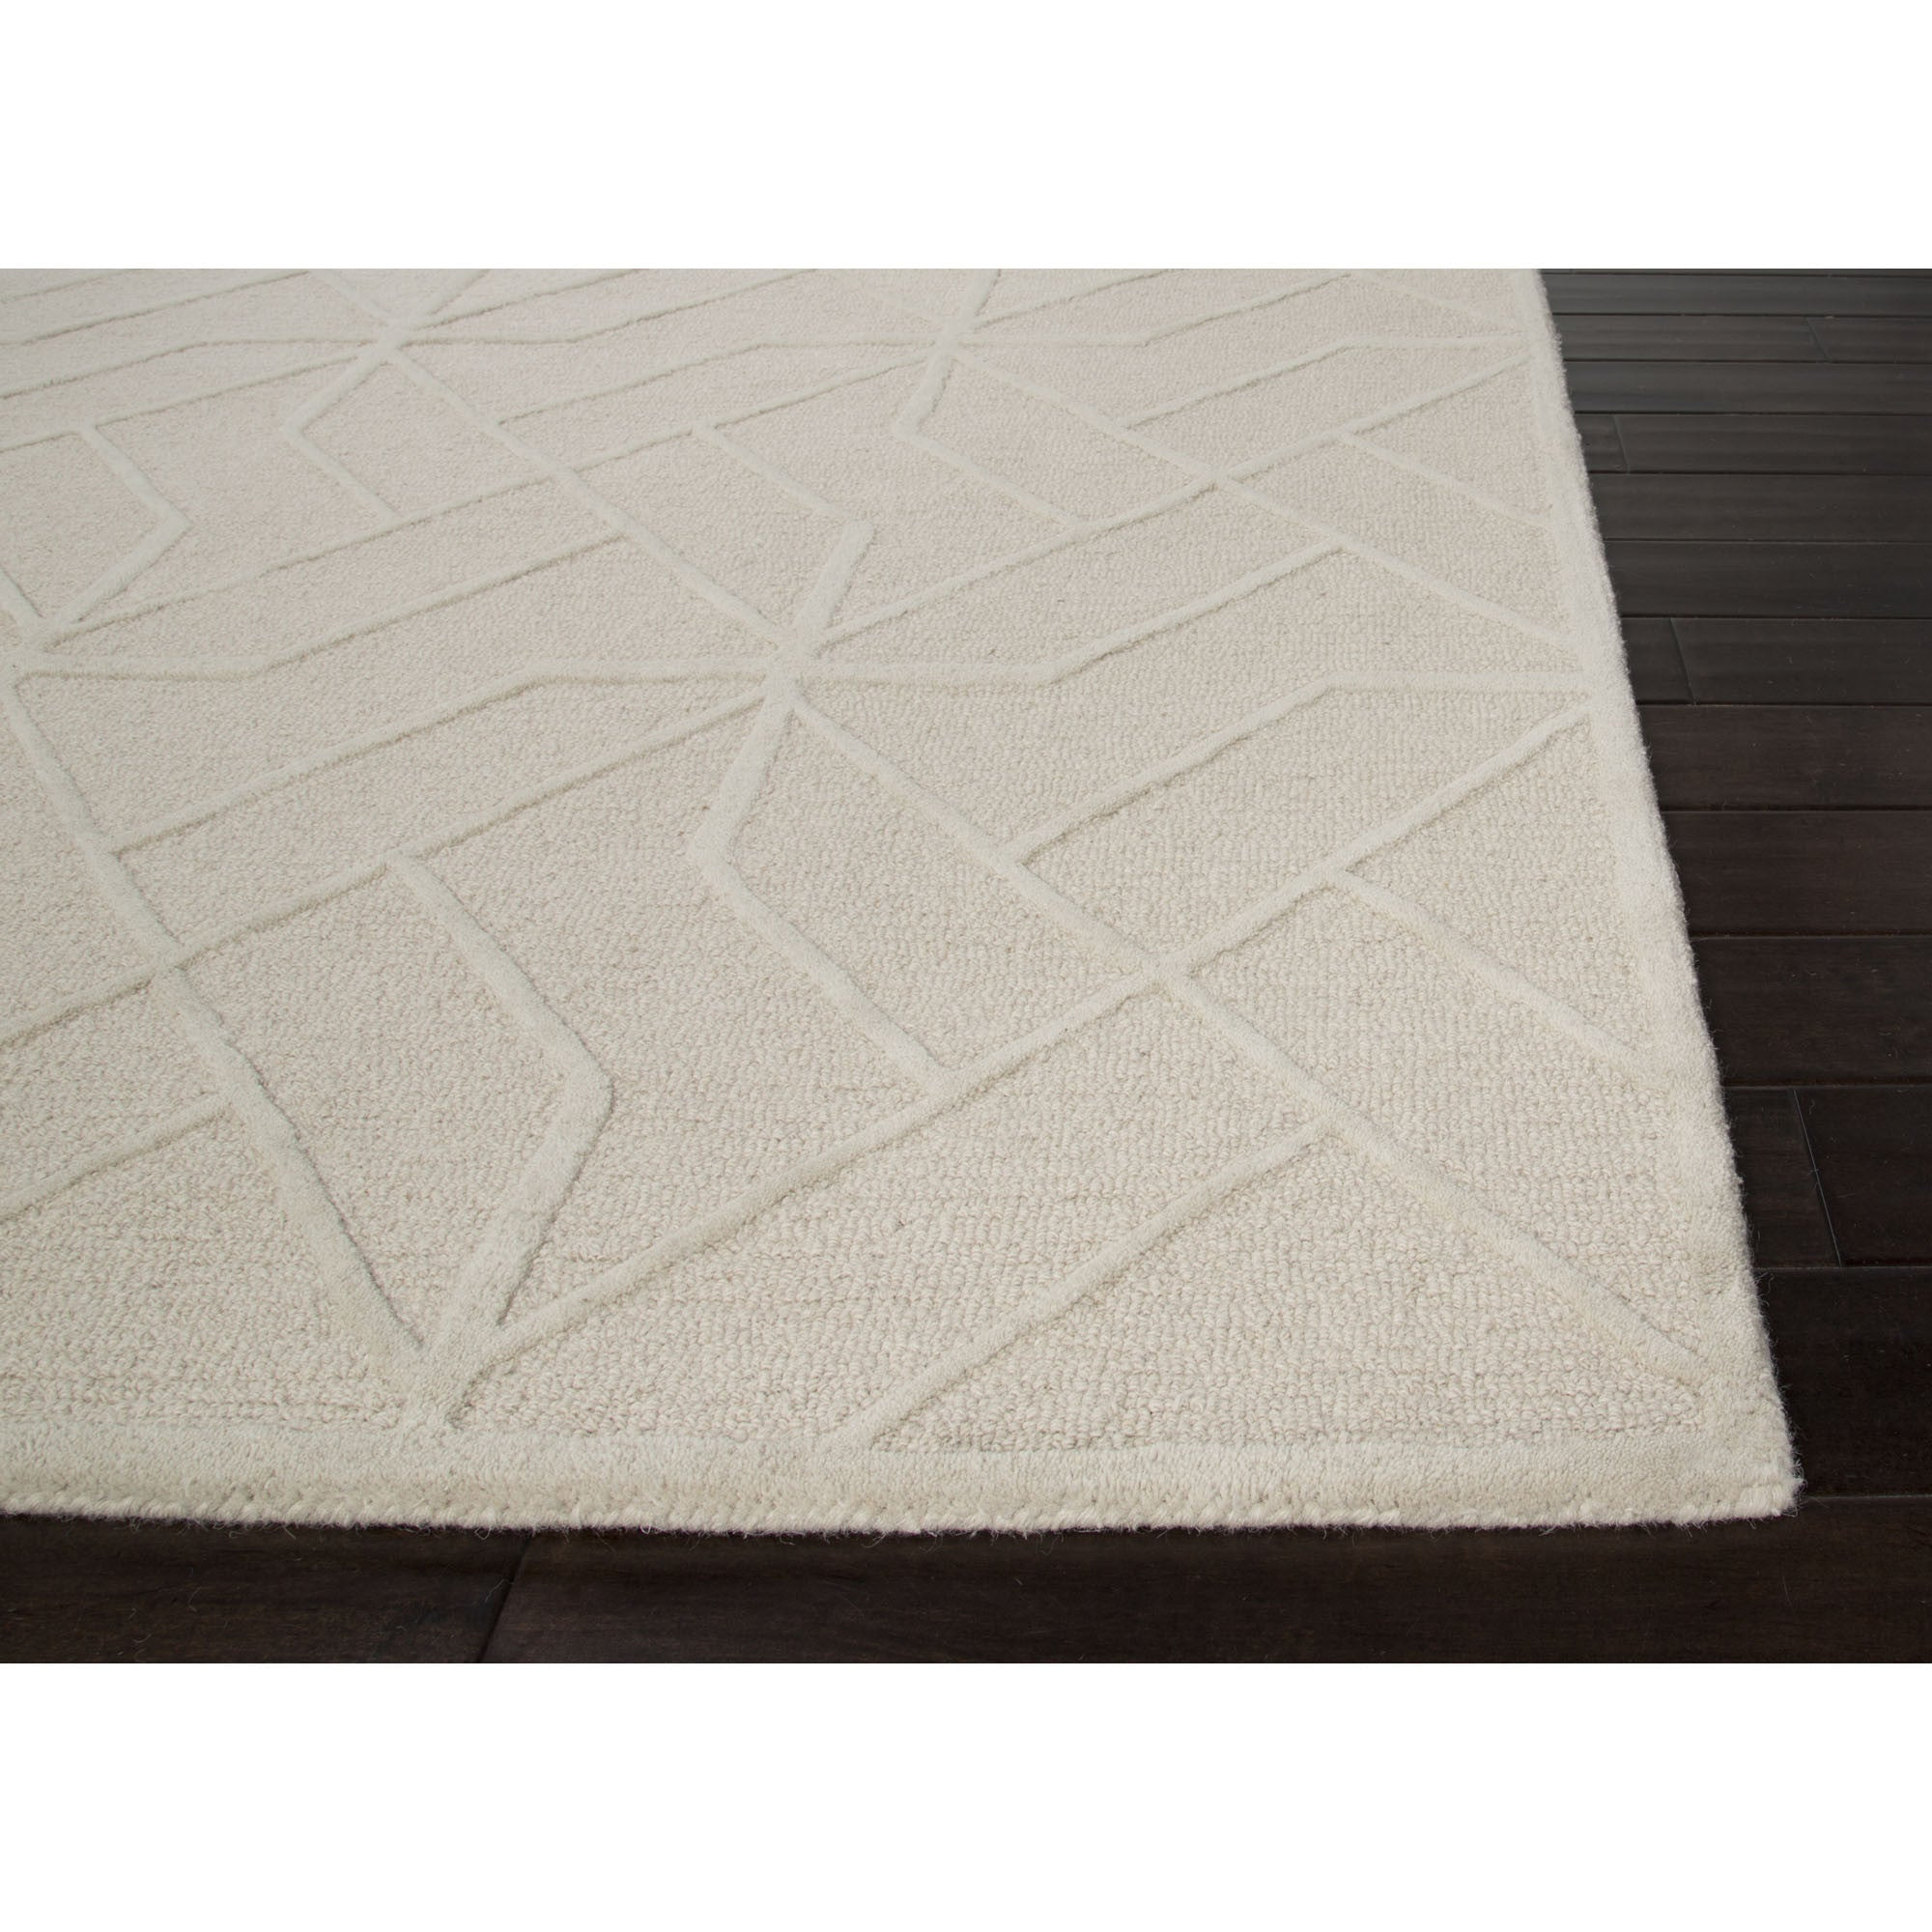 Jaipur rugs modern geometric pattern ivory white wool area for Modern wool area rugs